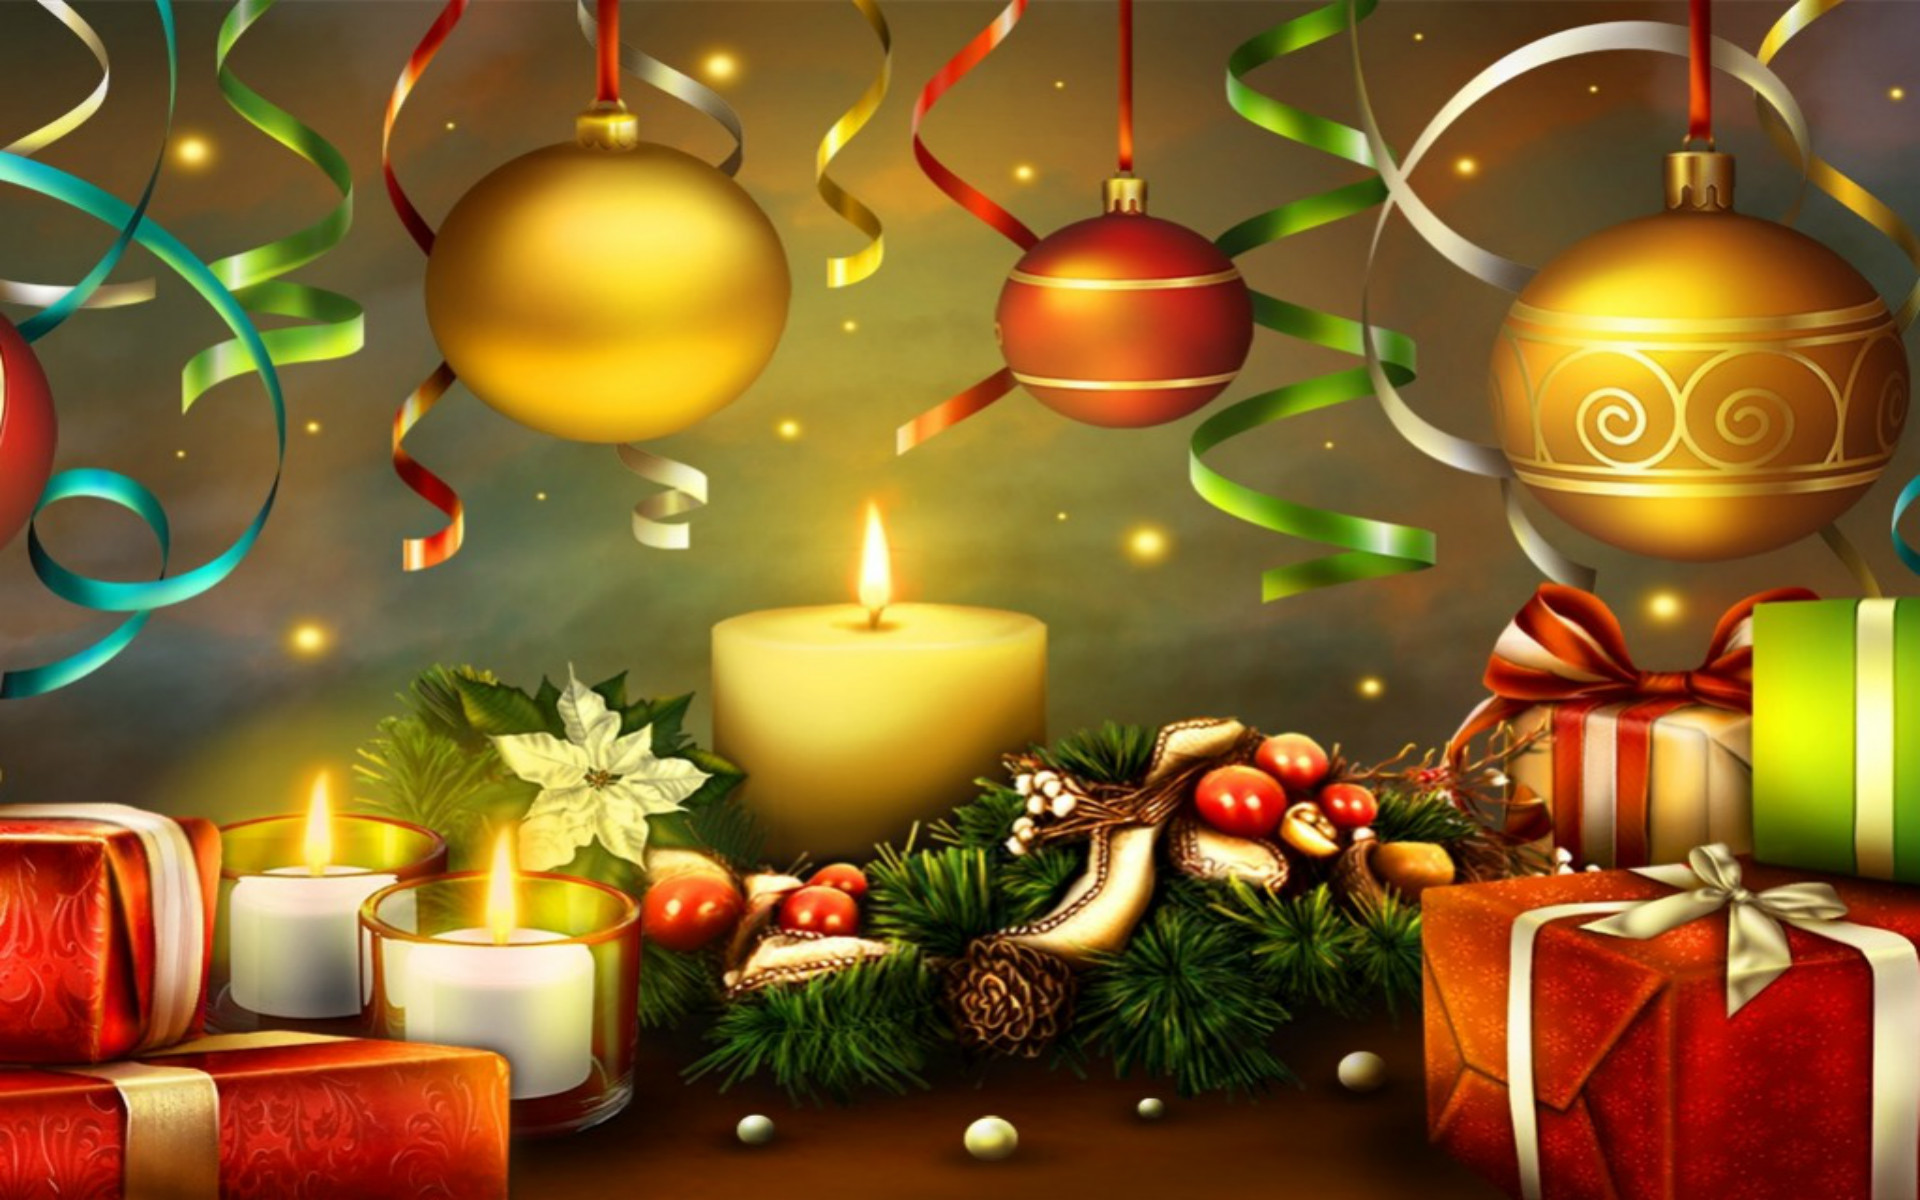 desktop christmas wallpaper backgrounds 183��